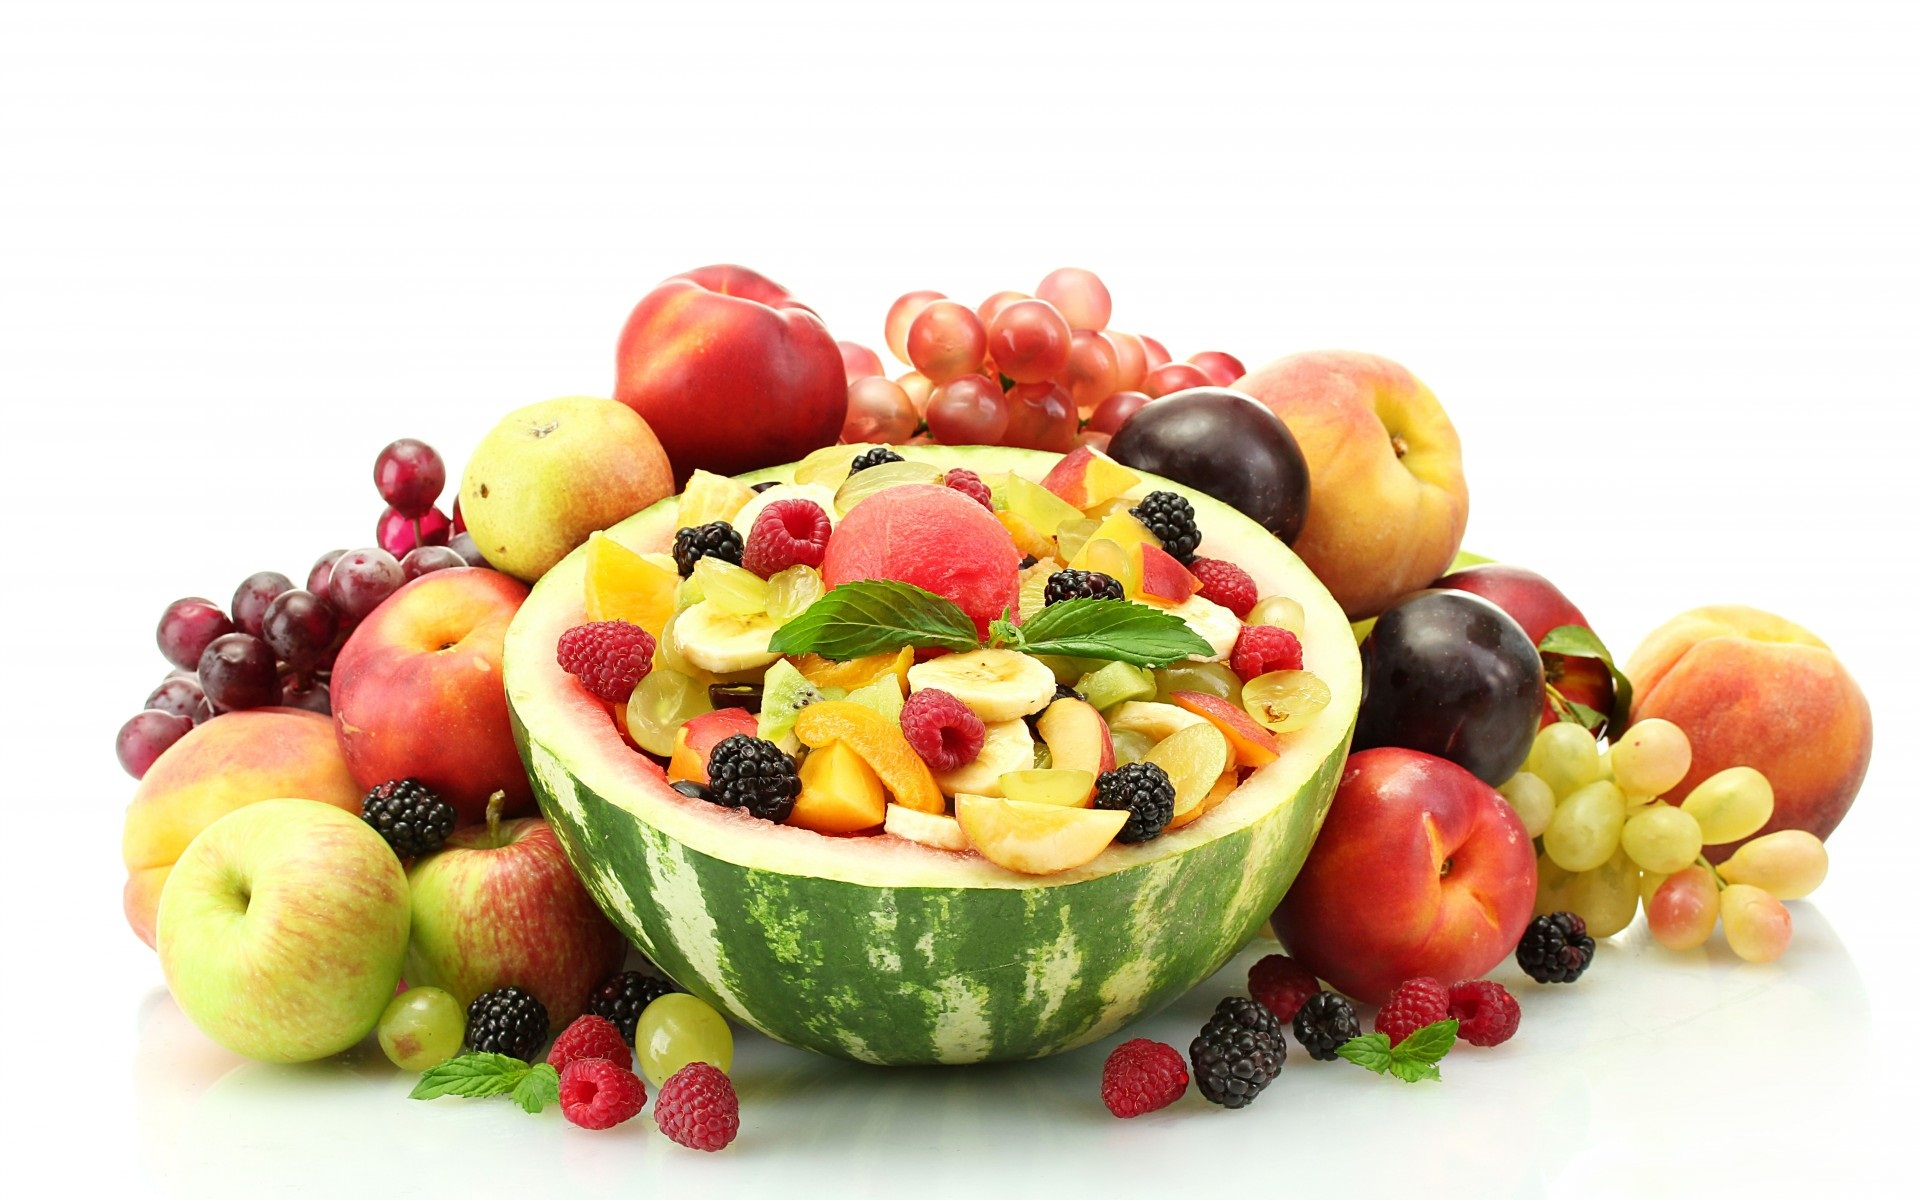 Fruit Salad Wallpapers